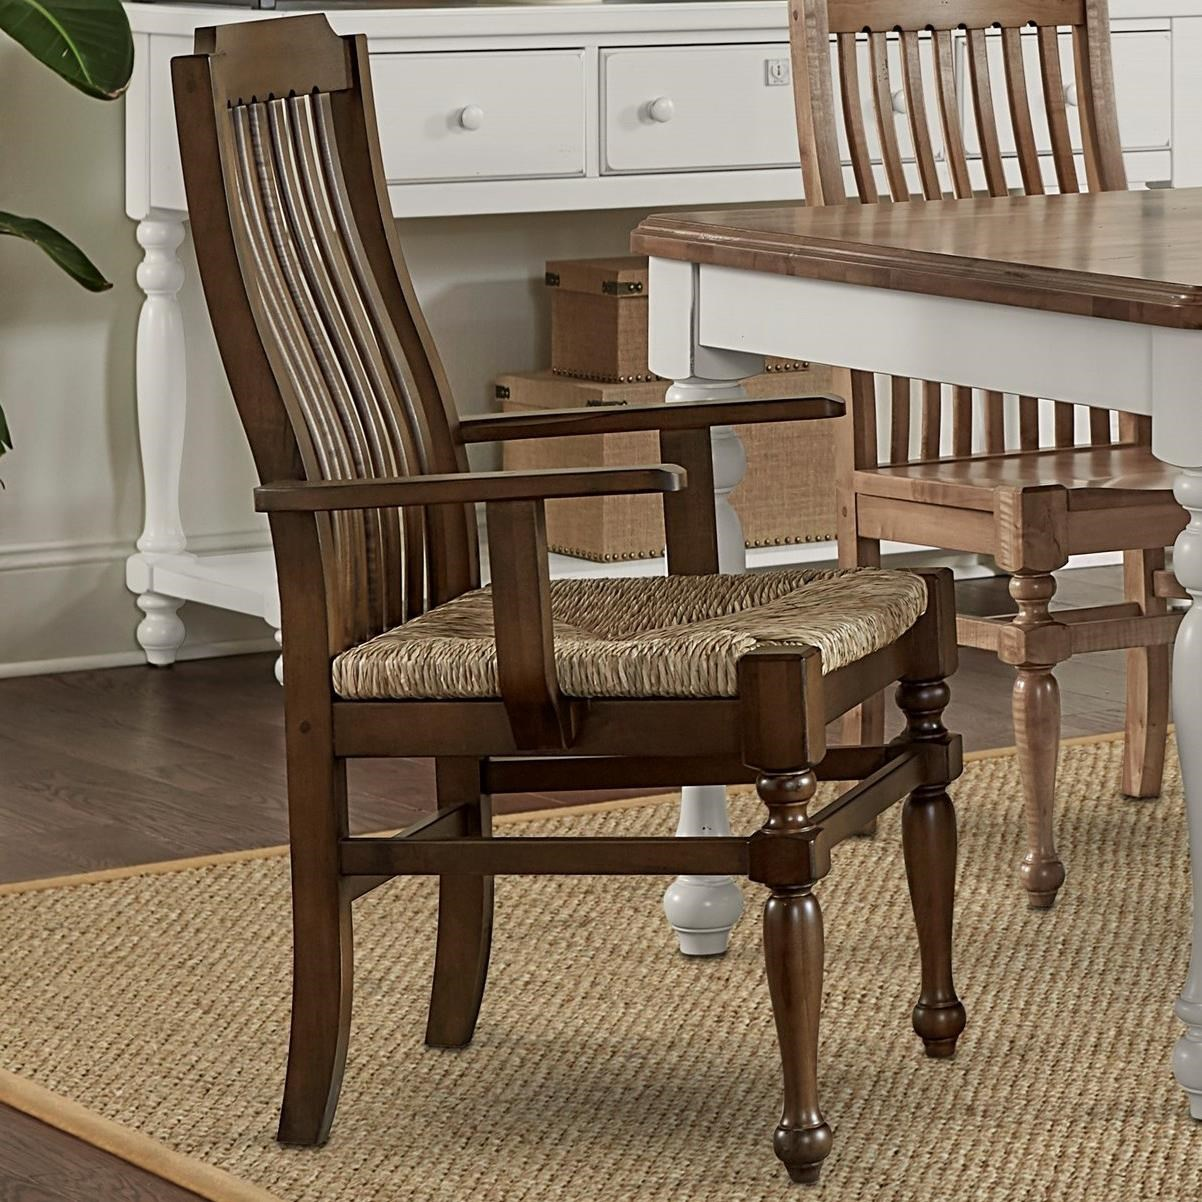 Seagrass Dining Chair Scotsman Rustic Solid Wood Seagrass Seat Arm Chair By Laurel Mercantile Co At Furniture Barn